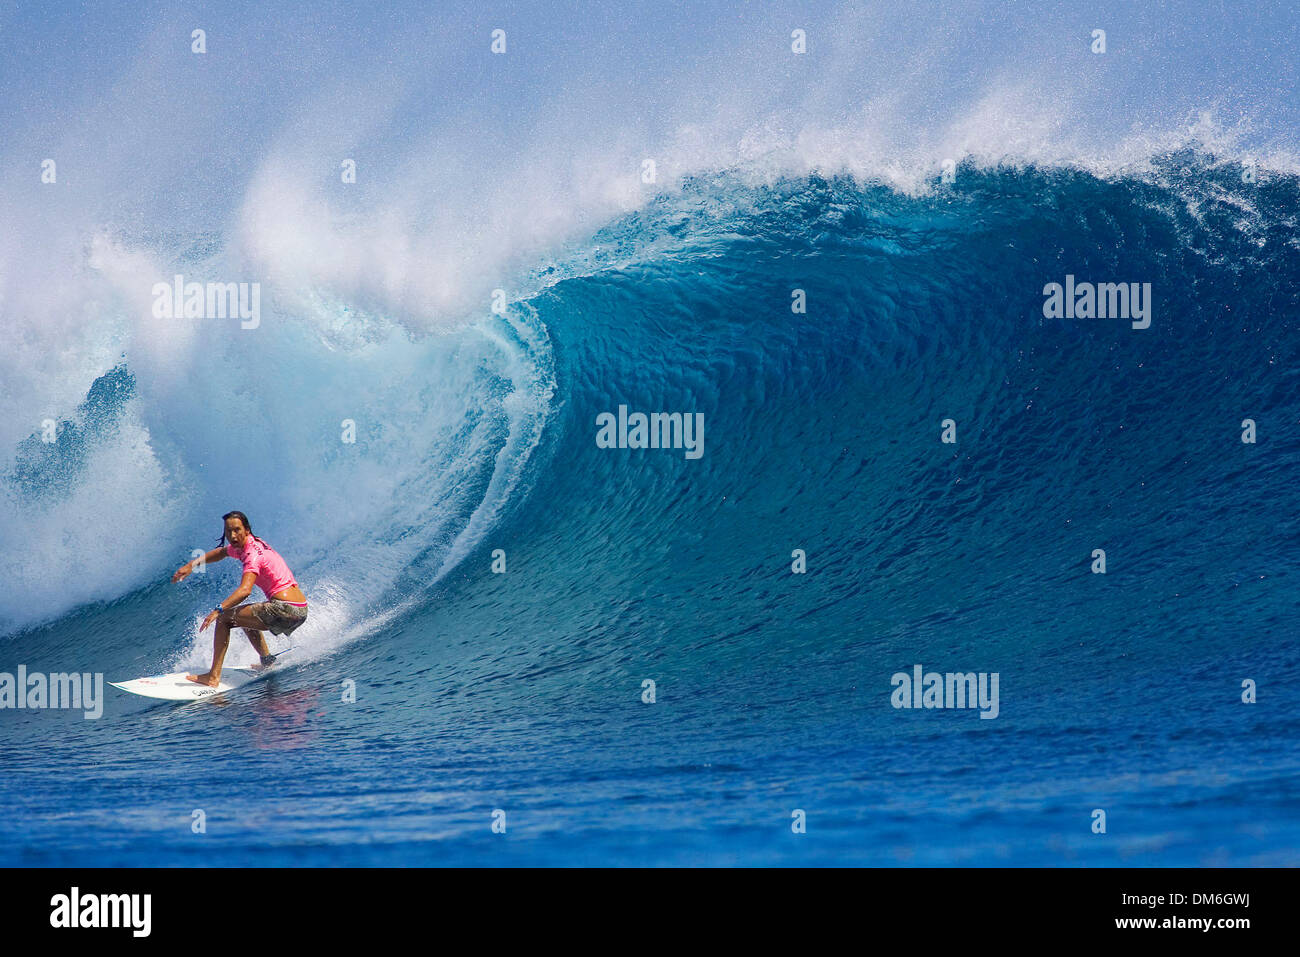 Apr 21, 2005; Tavarua Island, Fiji; Former six times ASP world champion LAYNE BEACHLEY (Manly Beach, Sydney, Aus) - Stock Image